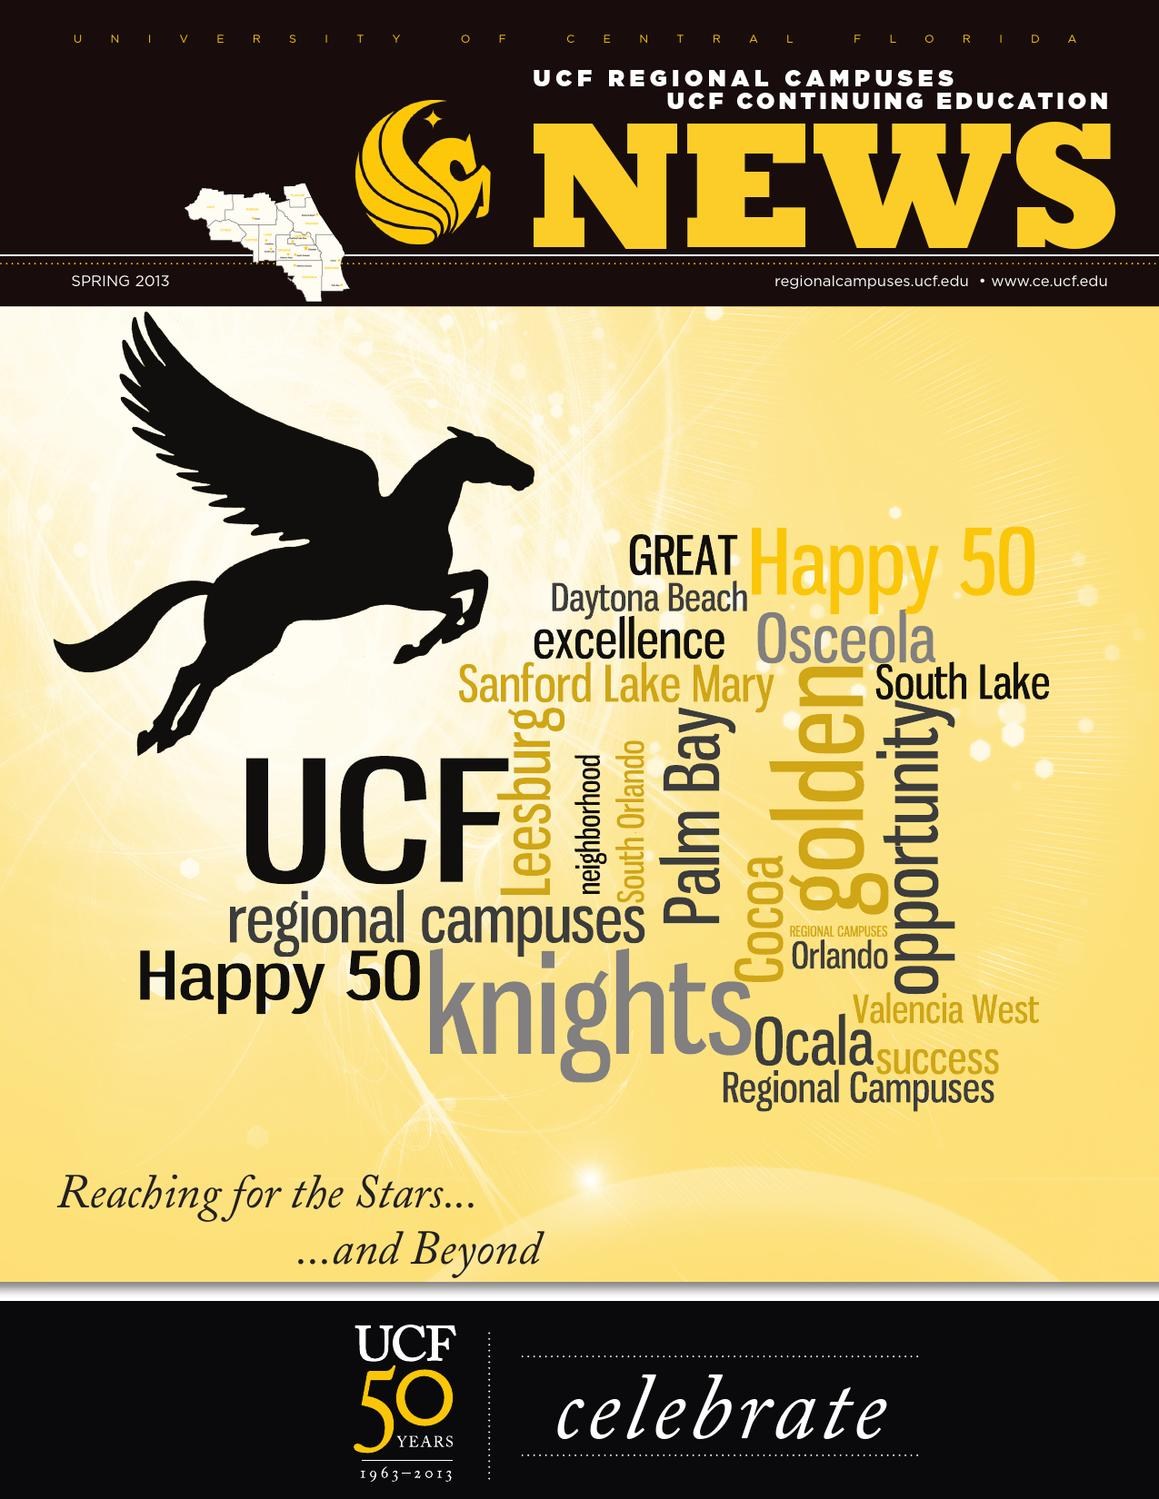 ucf admission essay 2013 If yes, please answer the questions below for fall 2013 admissions: number of   in place of an application essay as a validity check on an application essay.